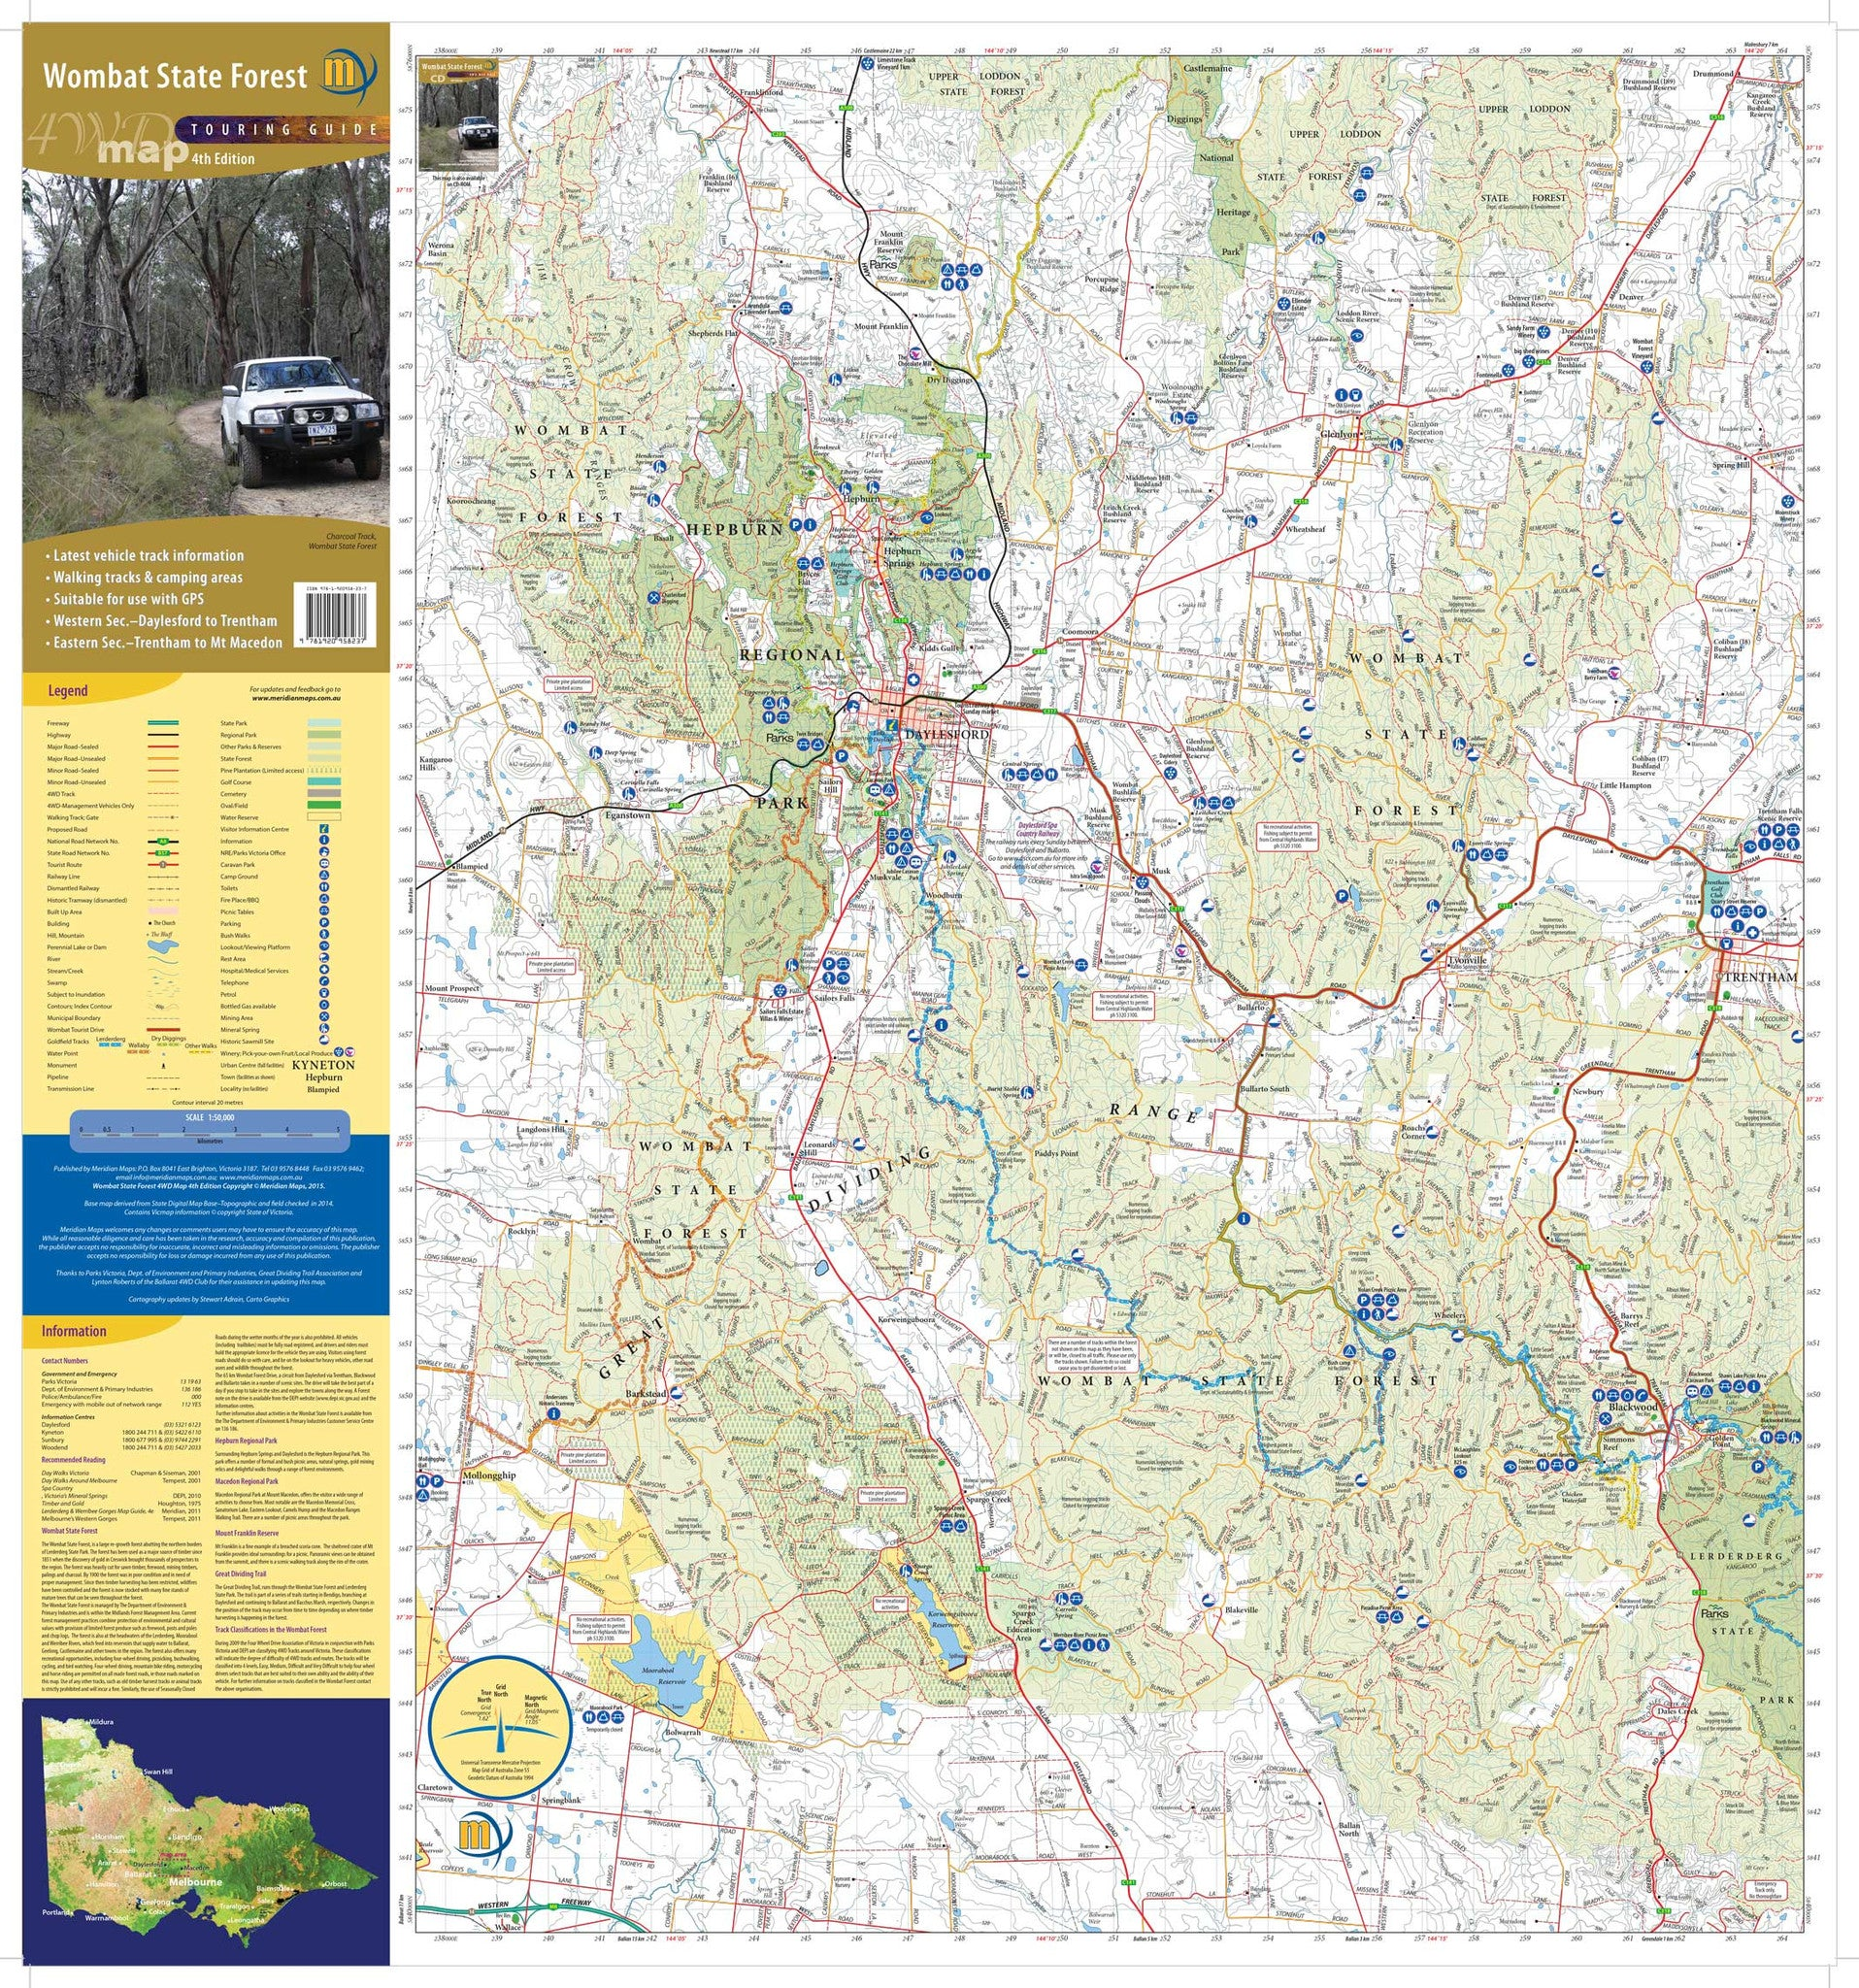 Wombat State Forest map buy map of Wombat State Forrest Mapworld